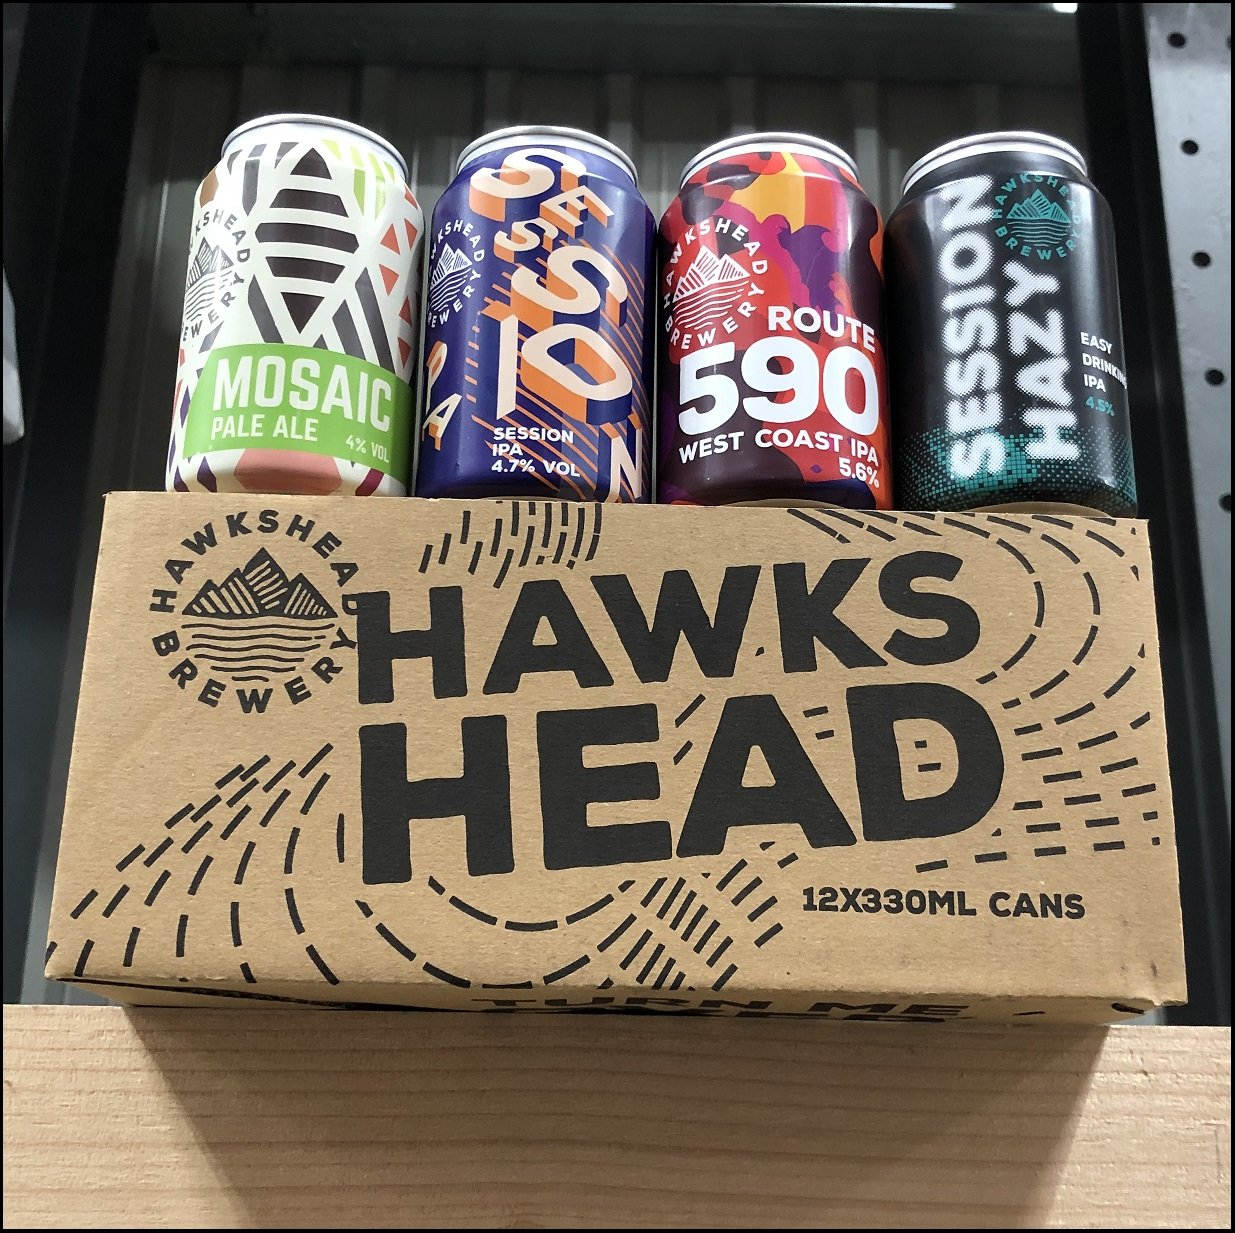 Hawskhead Brewery Mixed Case of 12 x 330ml Cans. Mosaic Pale Ale, Sessions IPA, 590 West Coast IPA and Session Hazy IPA